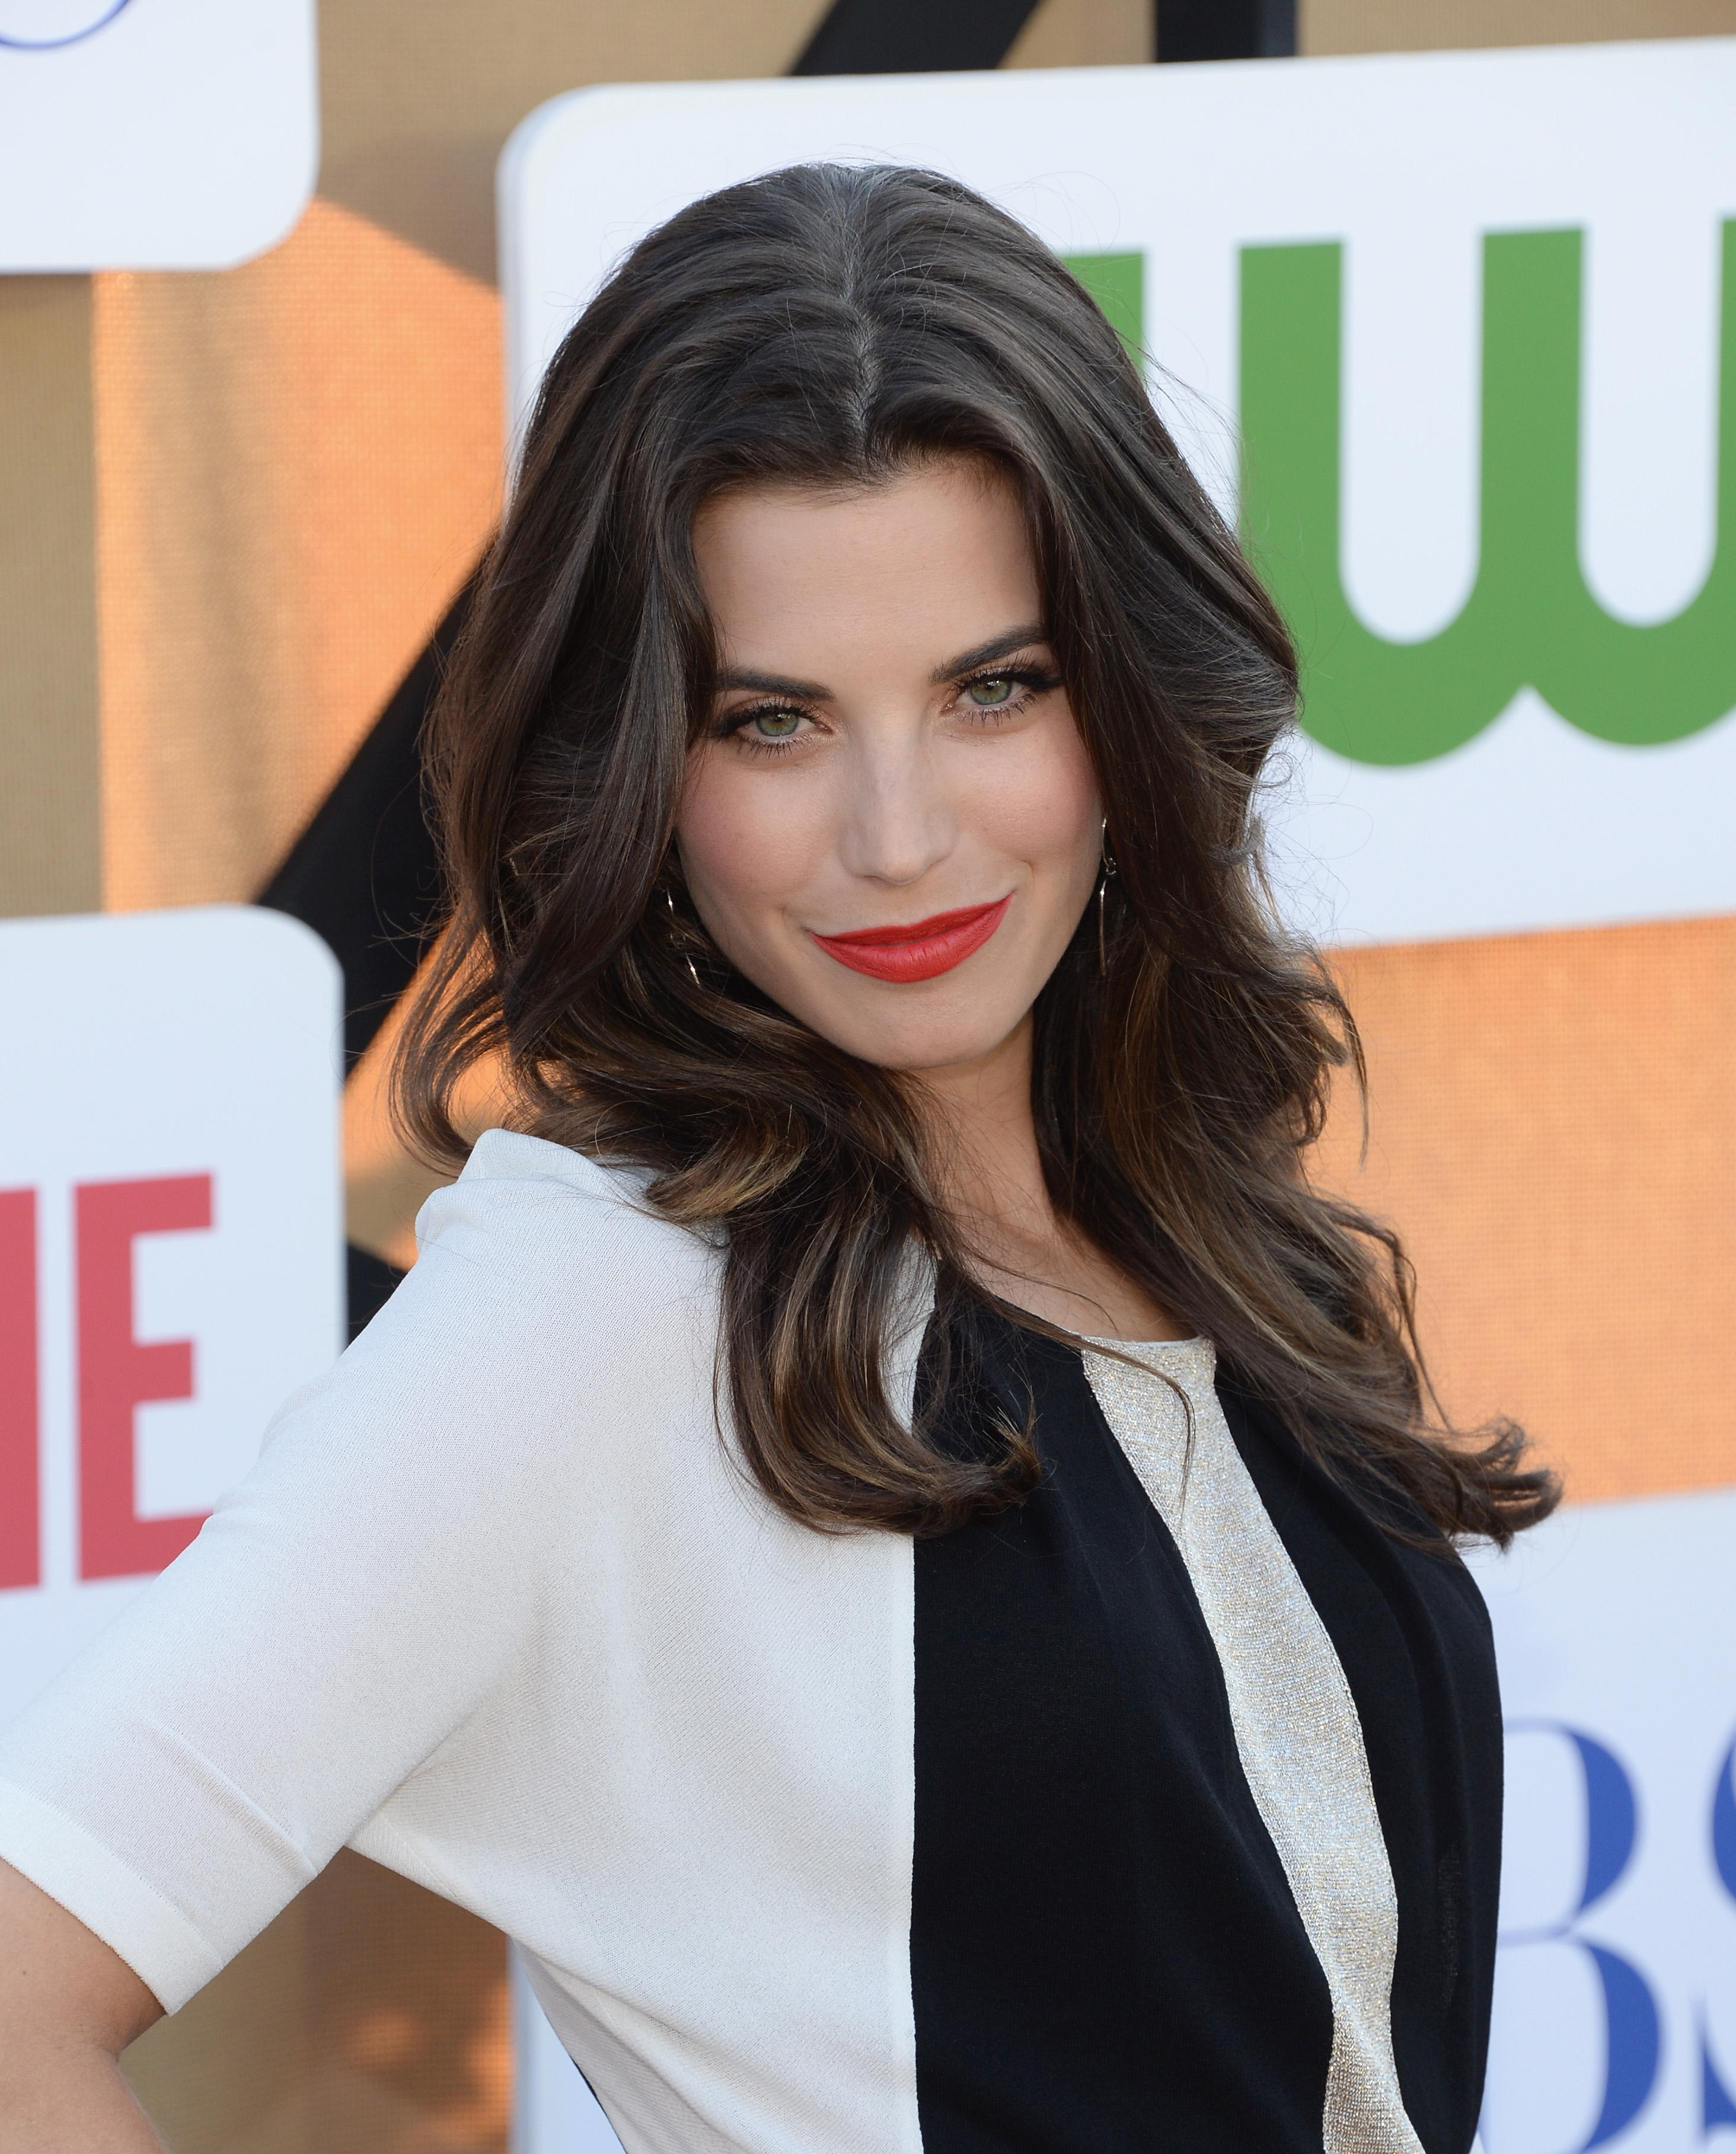 520007944_Meghan_Ory_CWCBSShowtime_2013_Summer_TCA_Party1_122_98lo.jpg